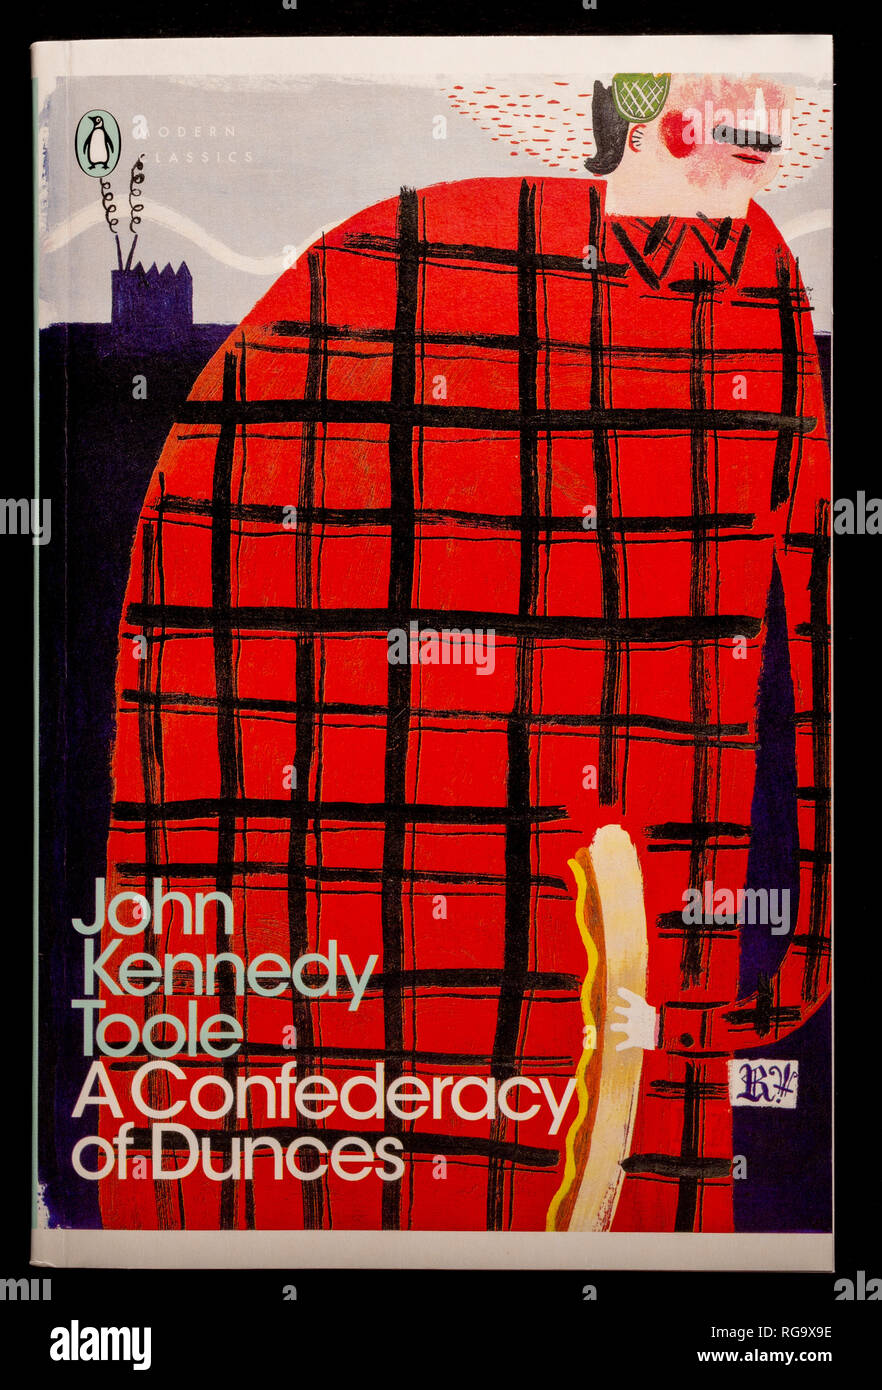 Book: A Confederacy of Dunces by John Kennedy Toole. Published by Penguin Modern Classics. - Stock Image